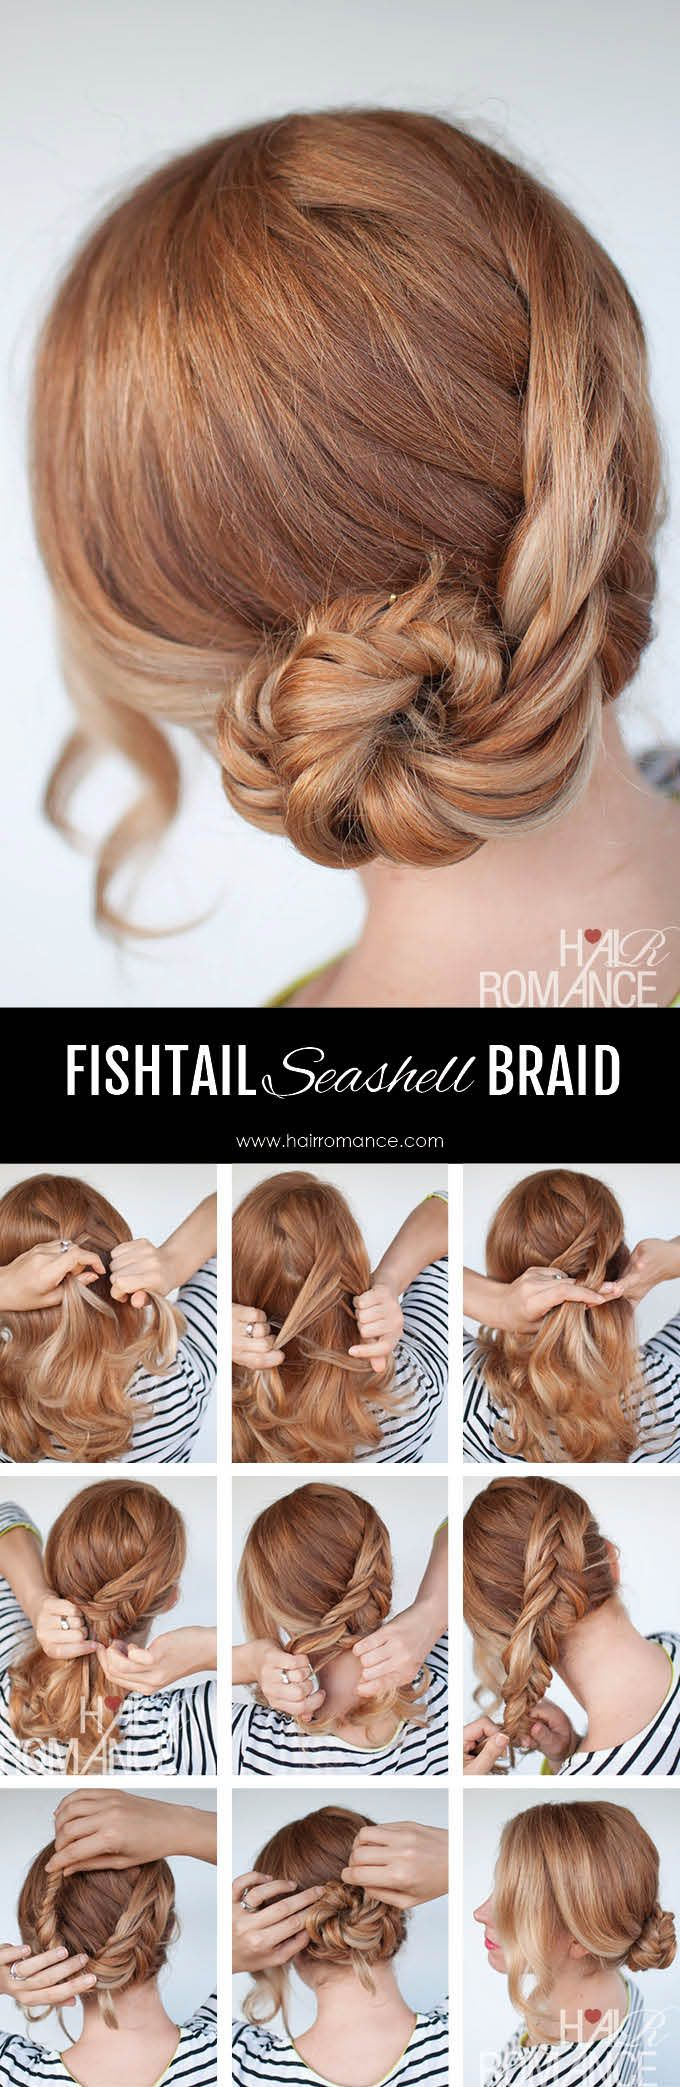 Seashell braid tutorial - Reverse fishtail braid tutorial